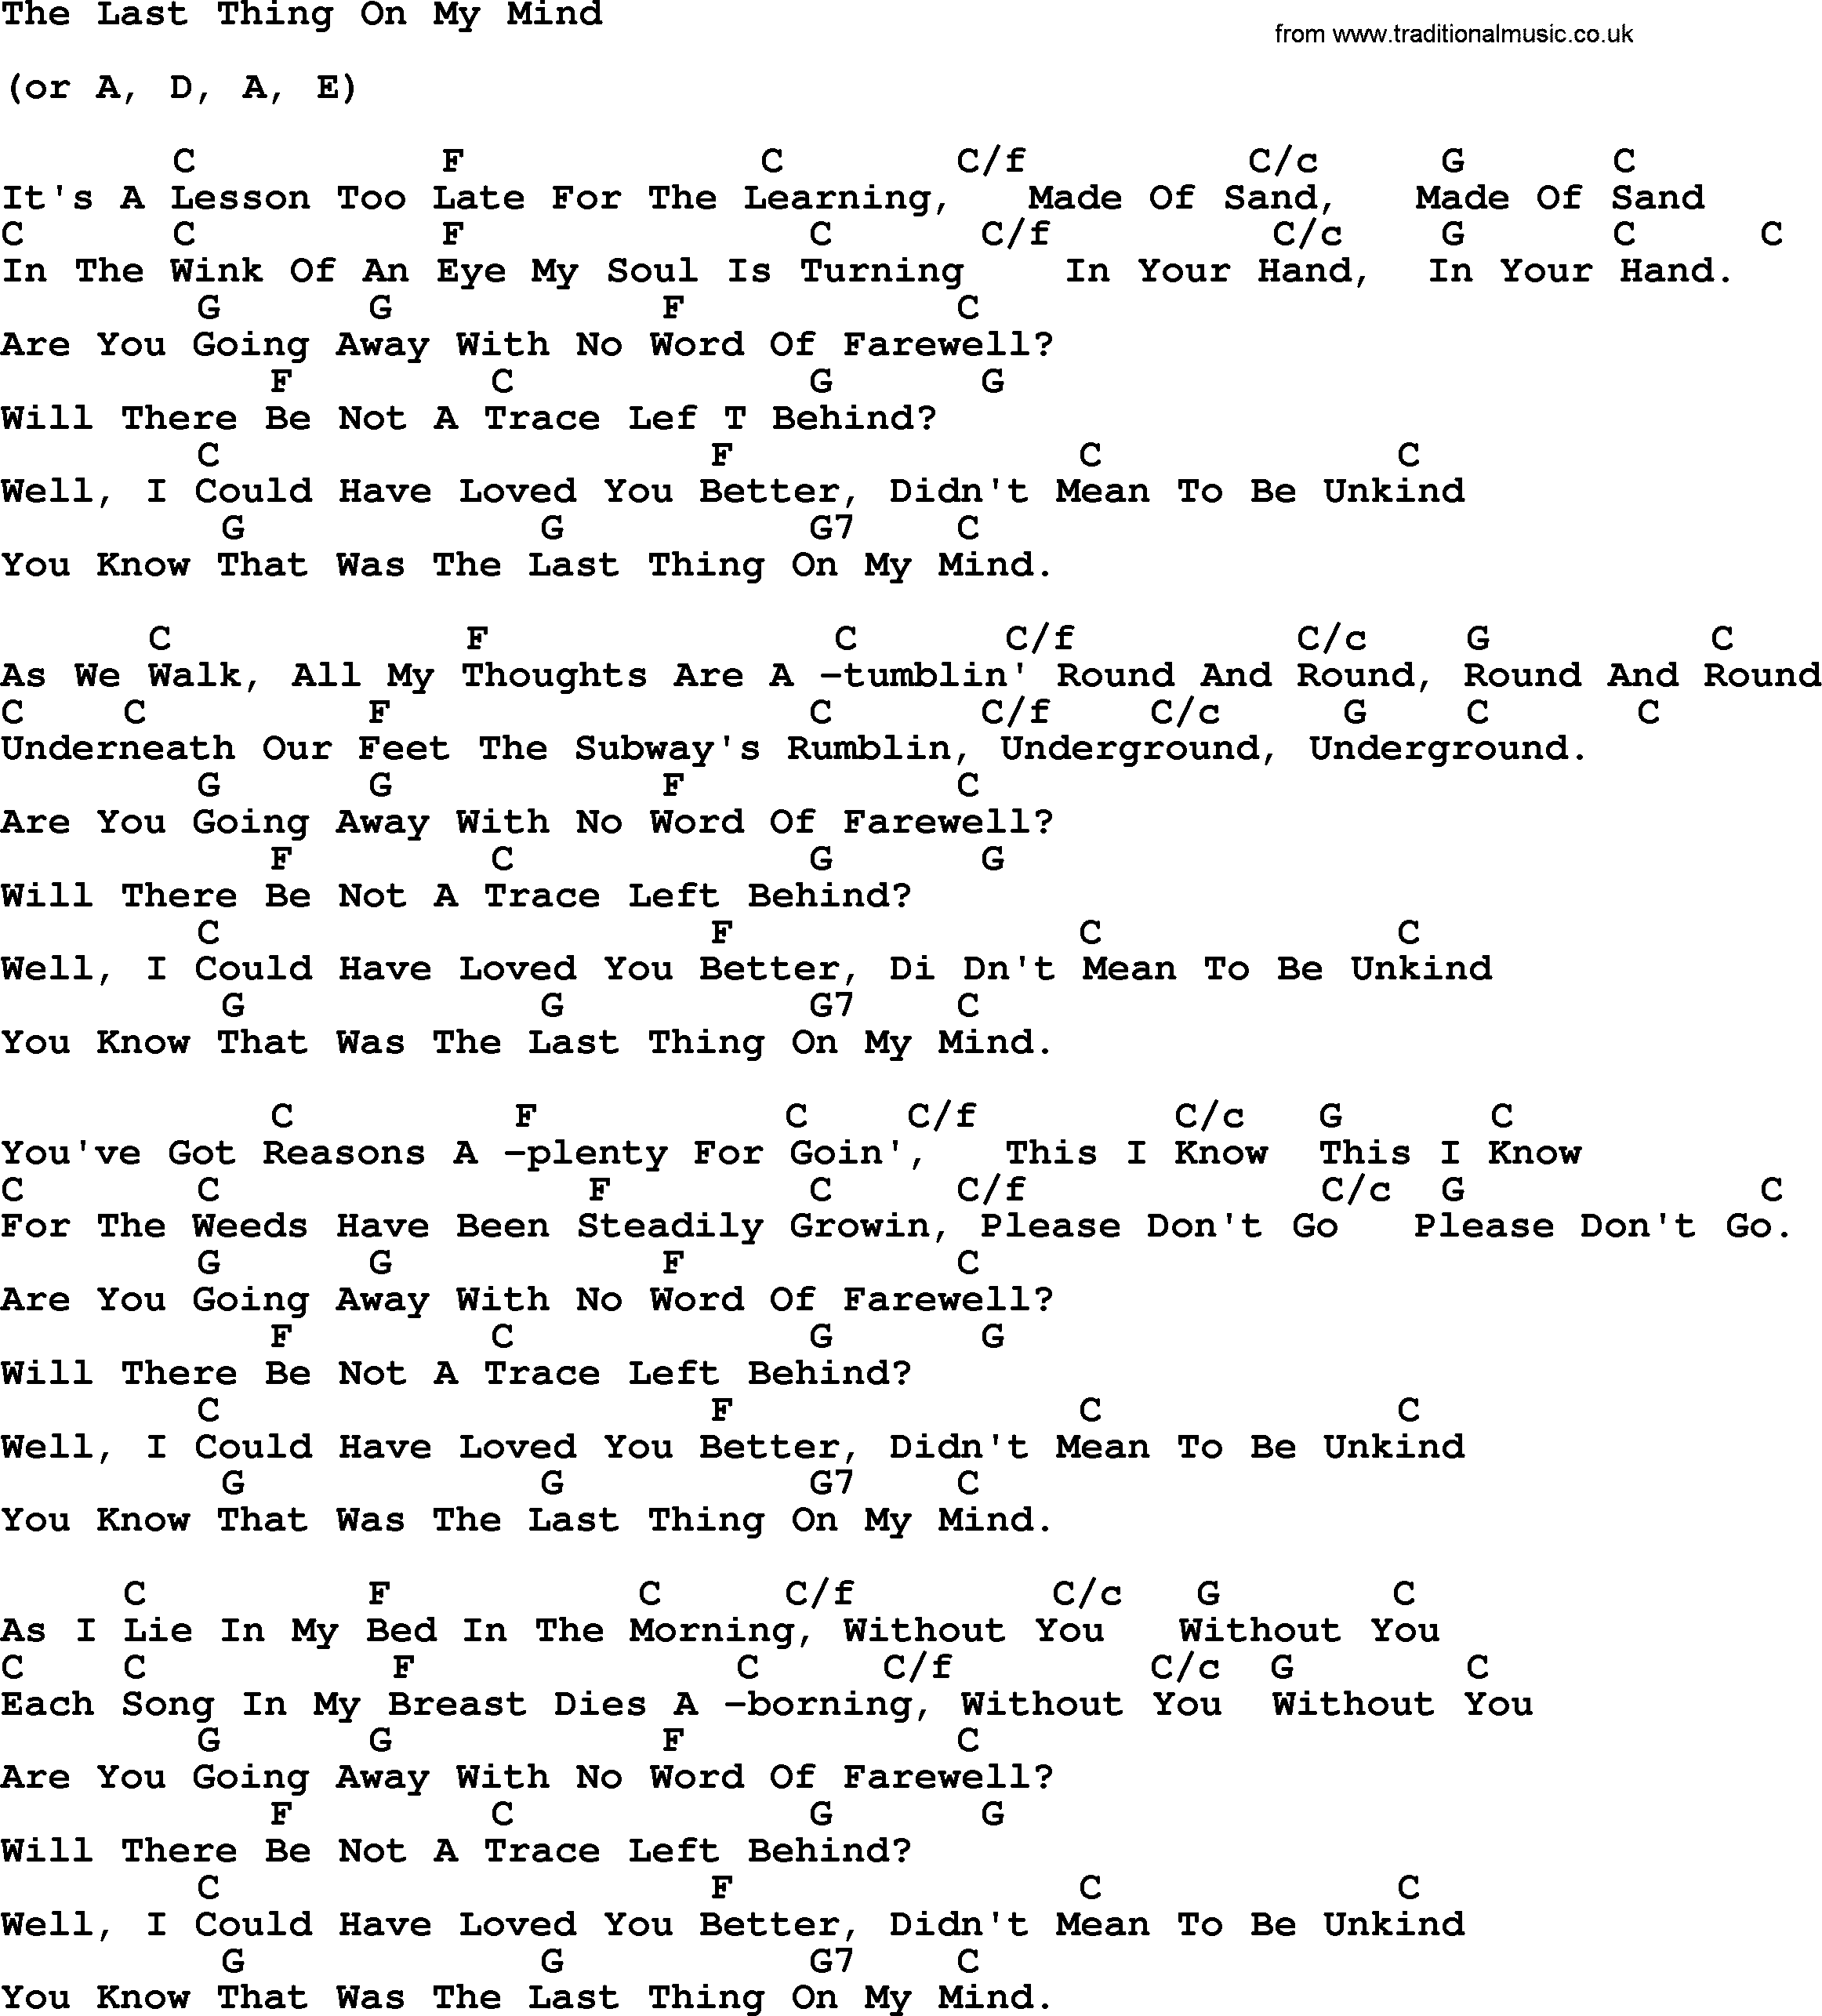 Peter Paul And Mary Song The Last Thing On My Mind Lyrics And Chords